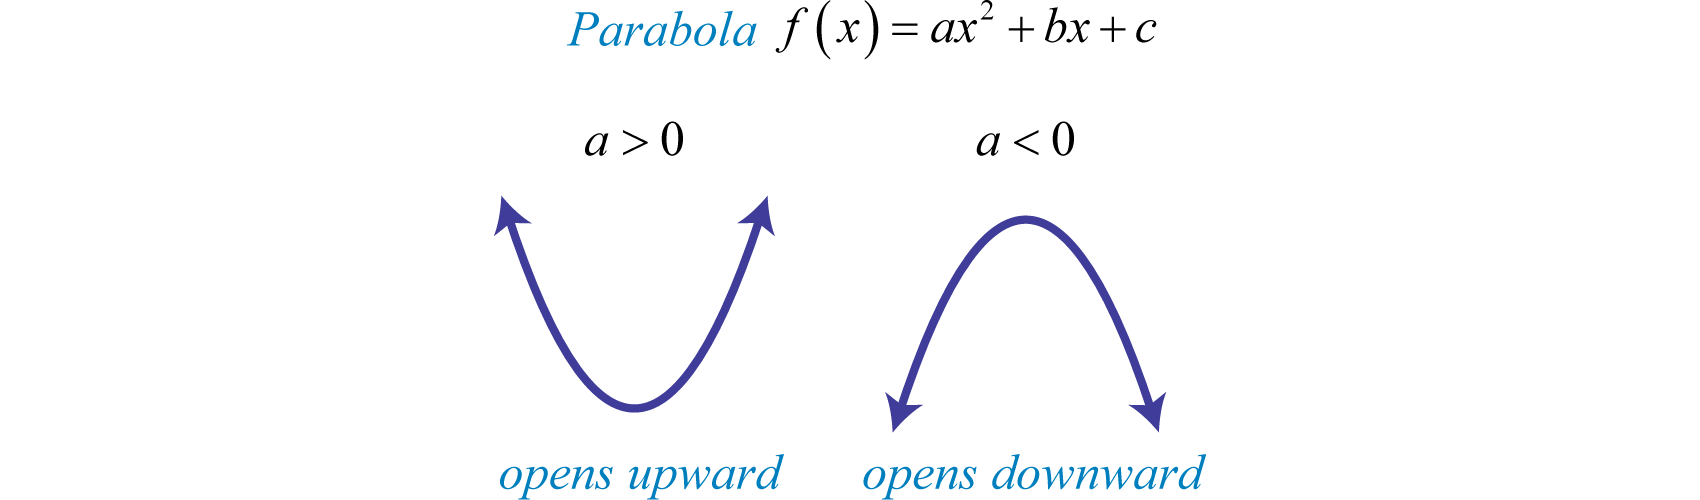 If The Leading Coefficient Is Negative, As In The Previous Example, Then  The Parabola Opens Downward If The Leading Coefficient Is Positive,